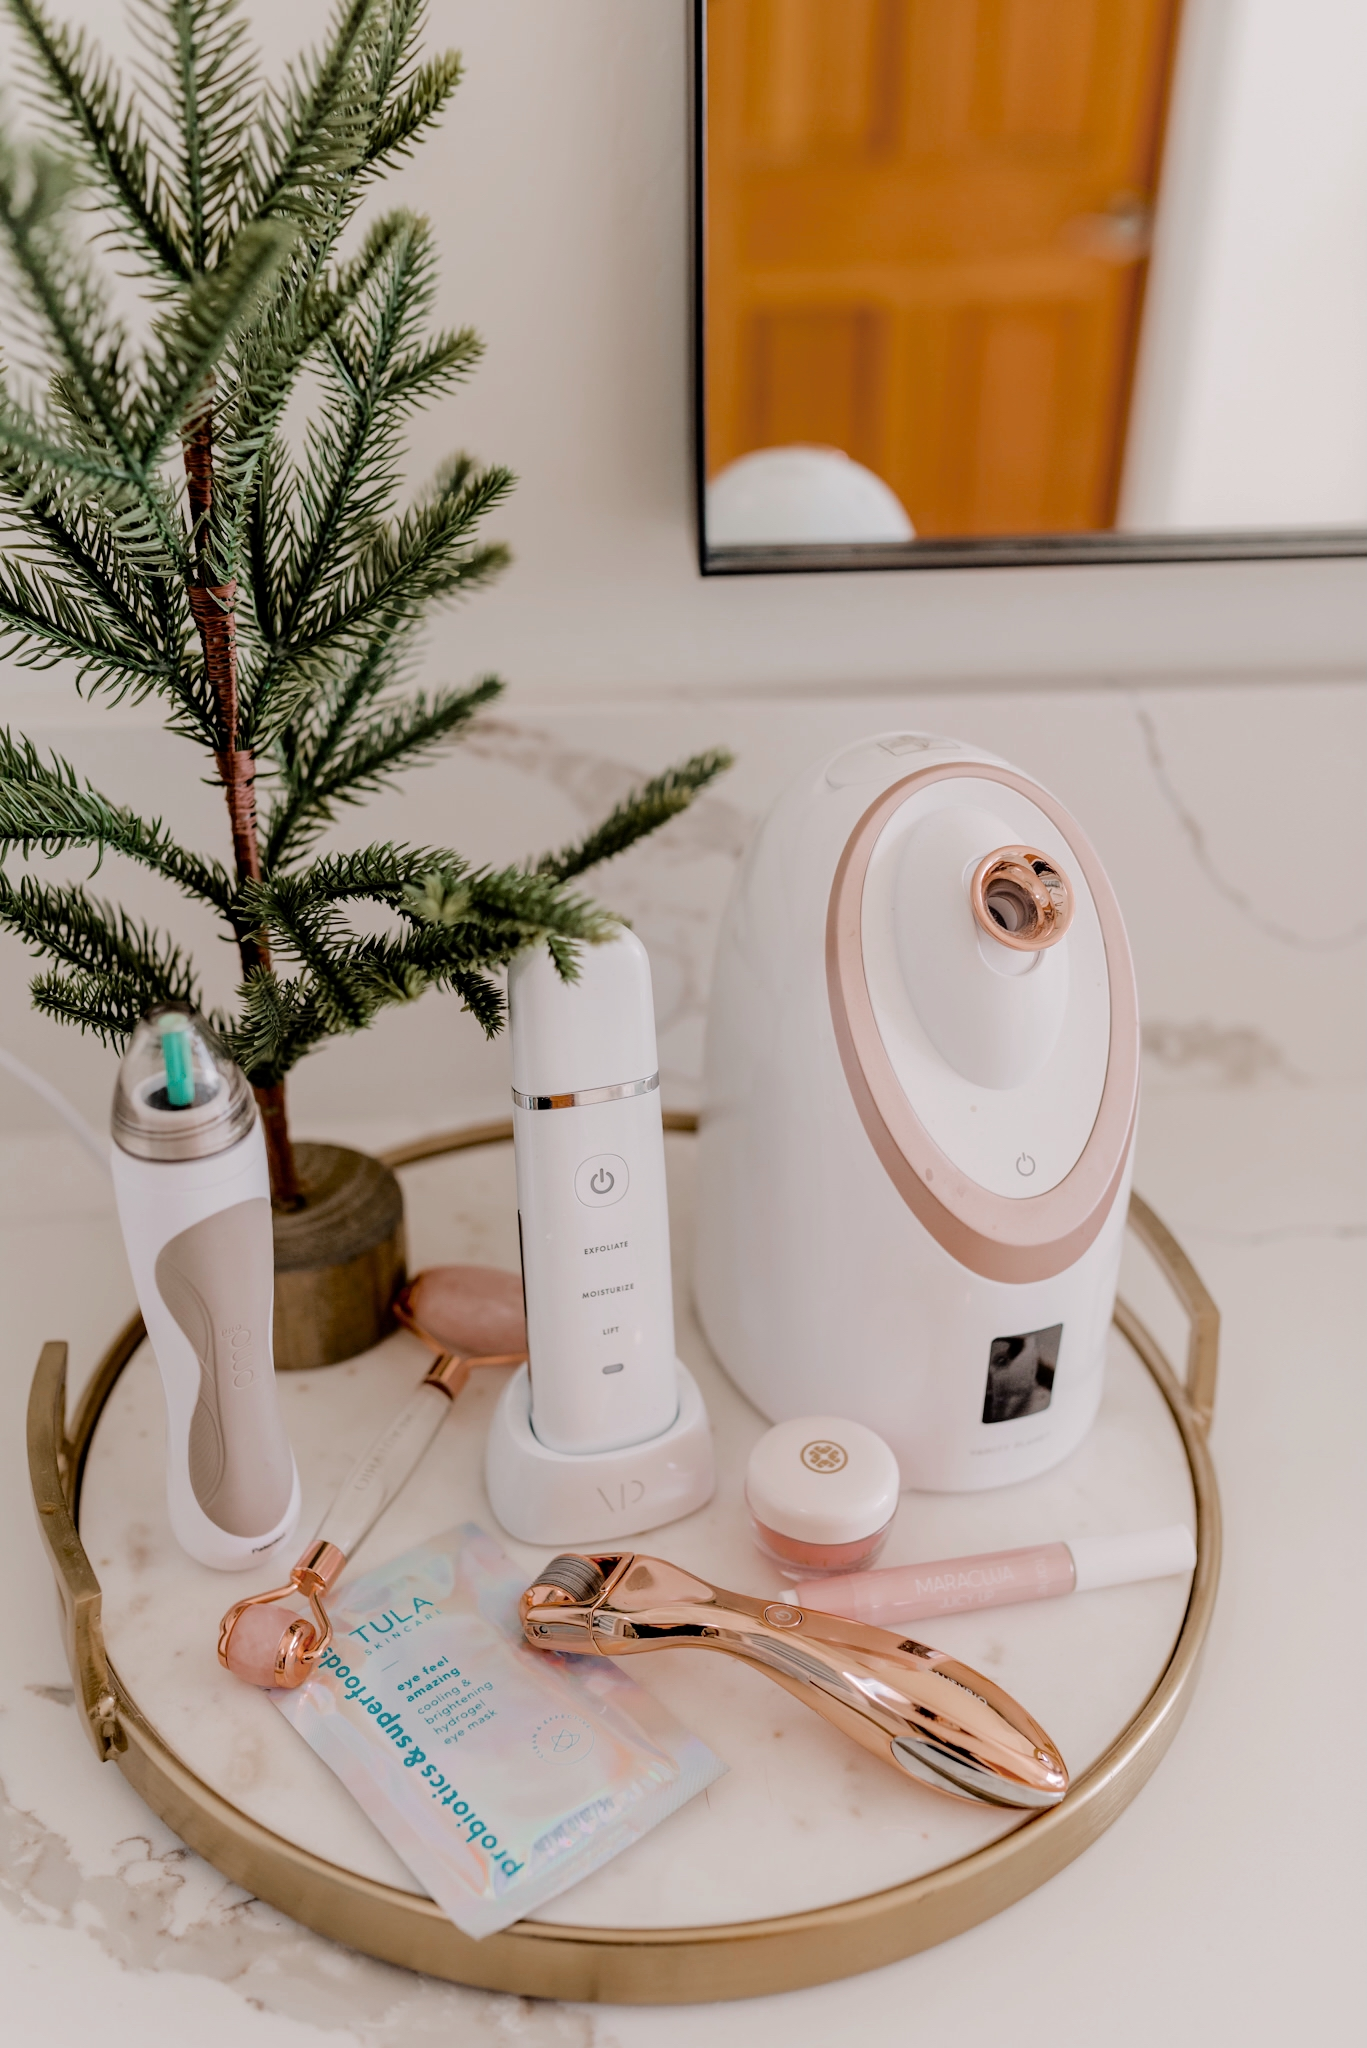 Beauty Gifts for Her by popular San Diego beauty blog, Navy Grace: image of facial steamer, microneedling tool, pmd microdermabrasion, rose quart face roller, Essia lifting wand, and Tula probiotic skincare.